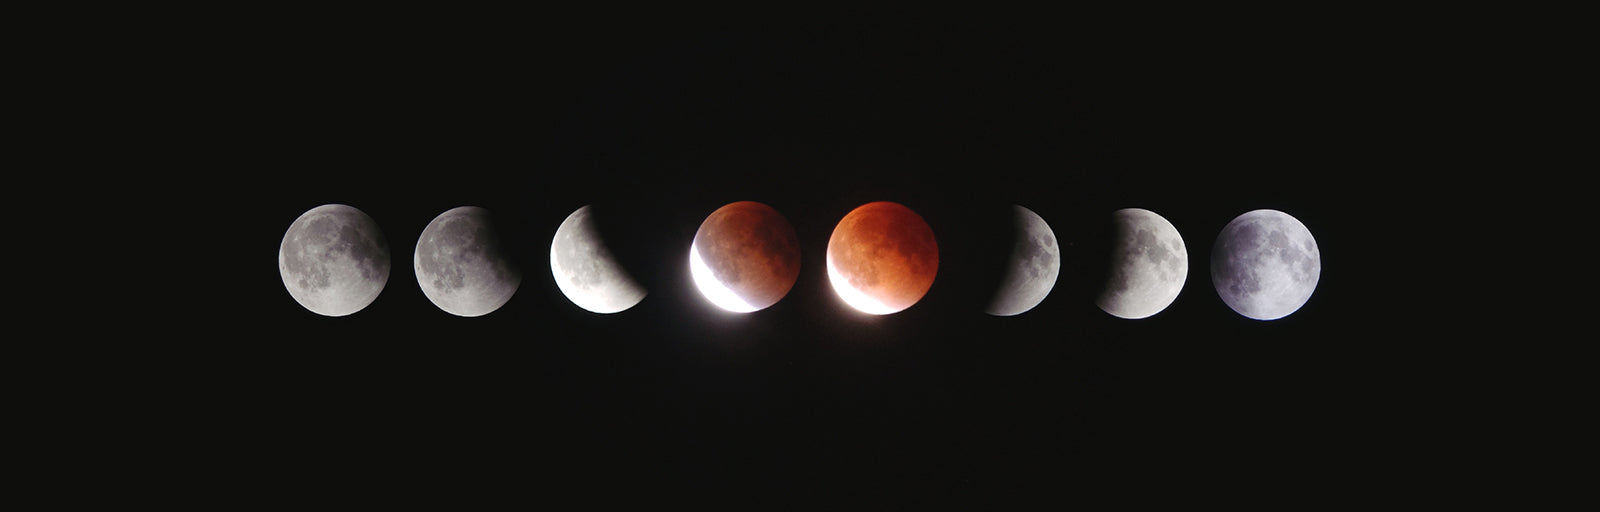 Panoramic of the moon in its various phases